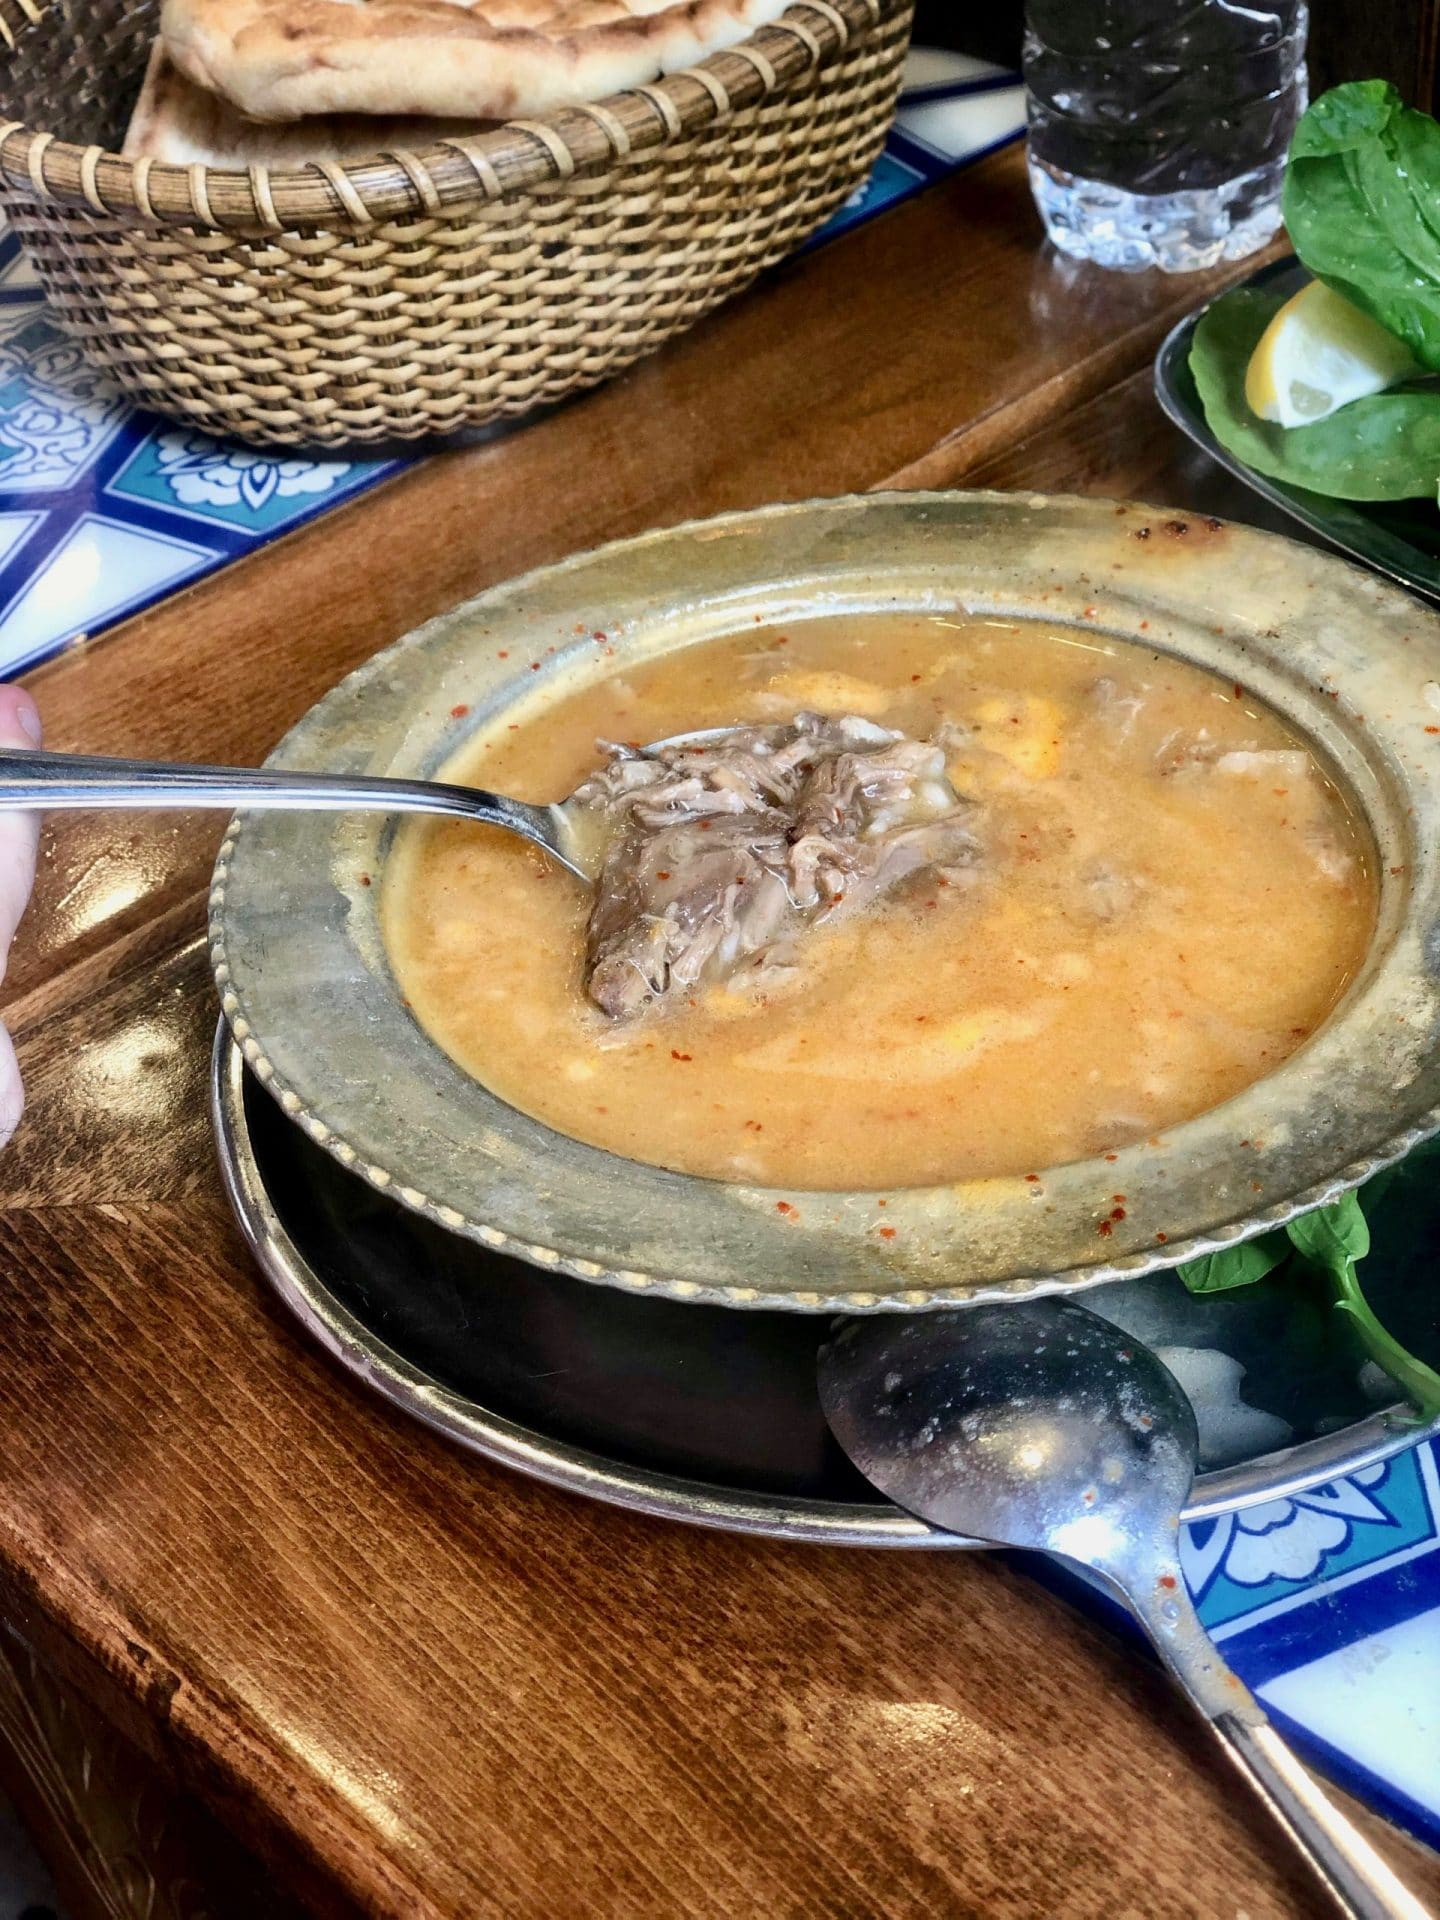 Turkish Food in Istanbul: Beyran çorbasi - lamb soup. The soup is an orange colour and a spoon is holding up a chunk of lamb.